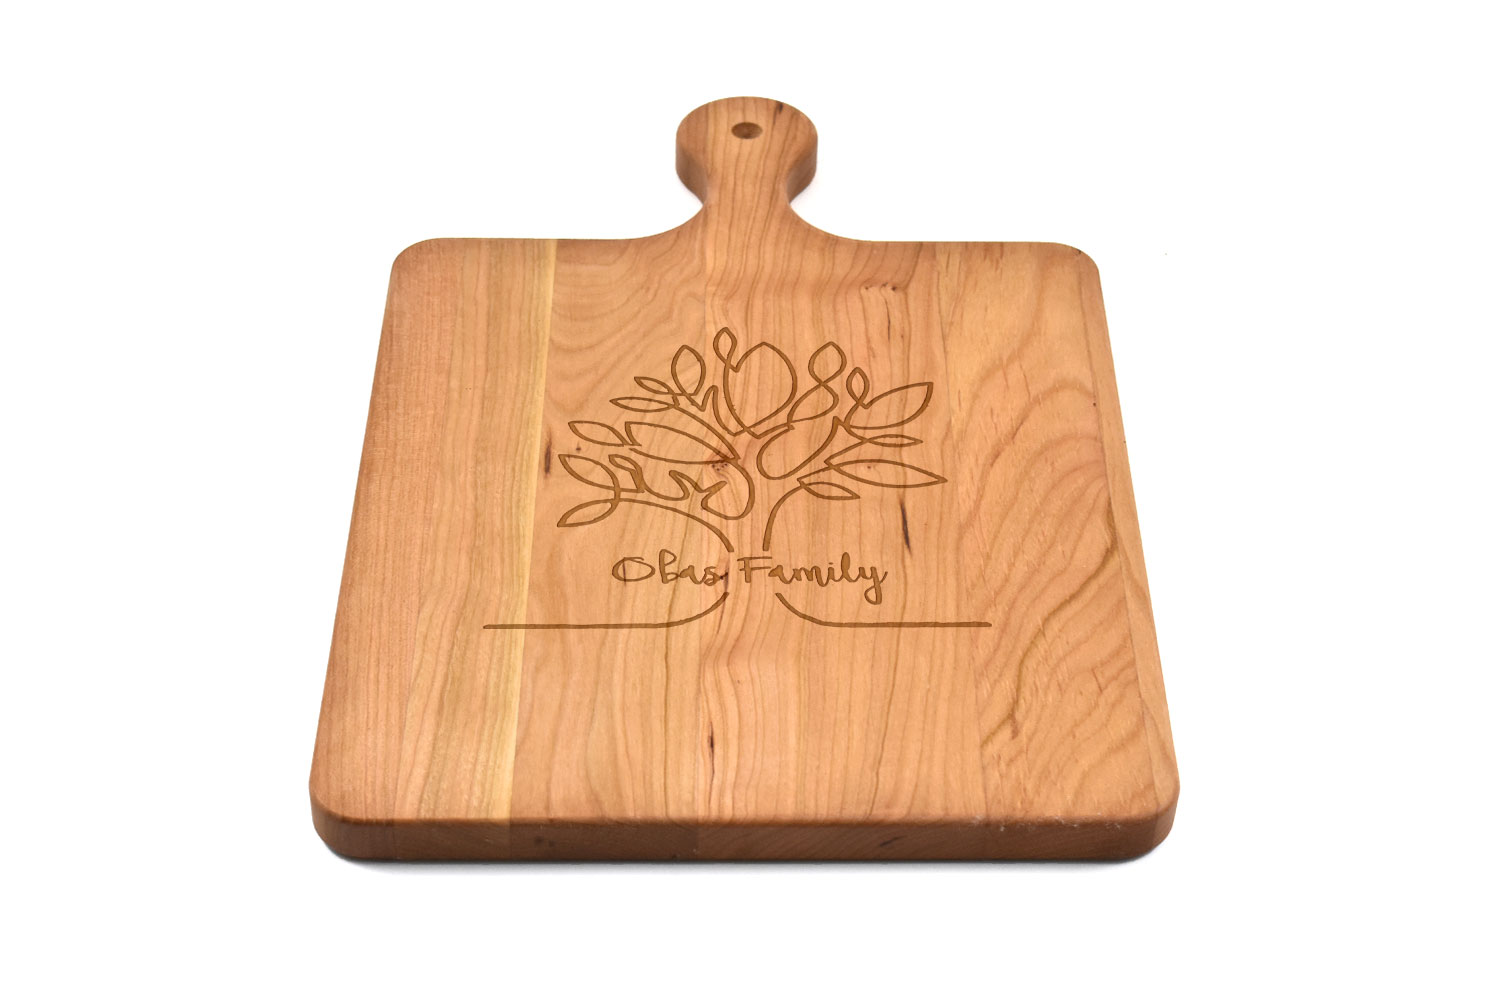 Cherry Wood Cutting Board with Rounded Handle, Custom Engraved, Chopping Board, Presentation Board, Made in Canada